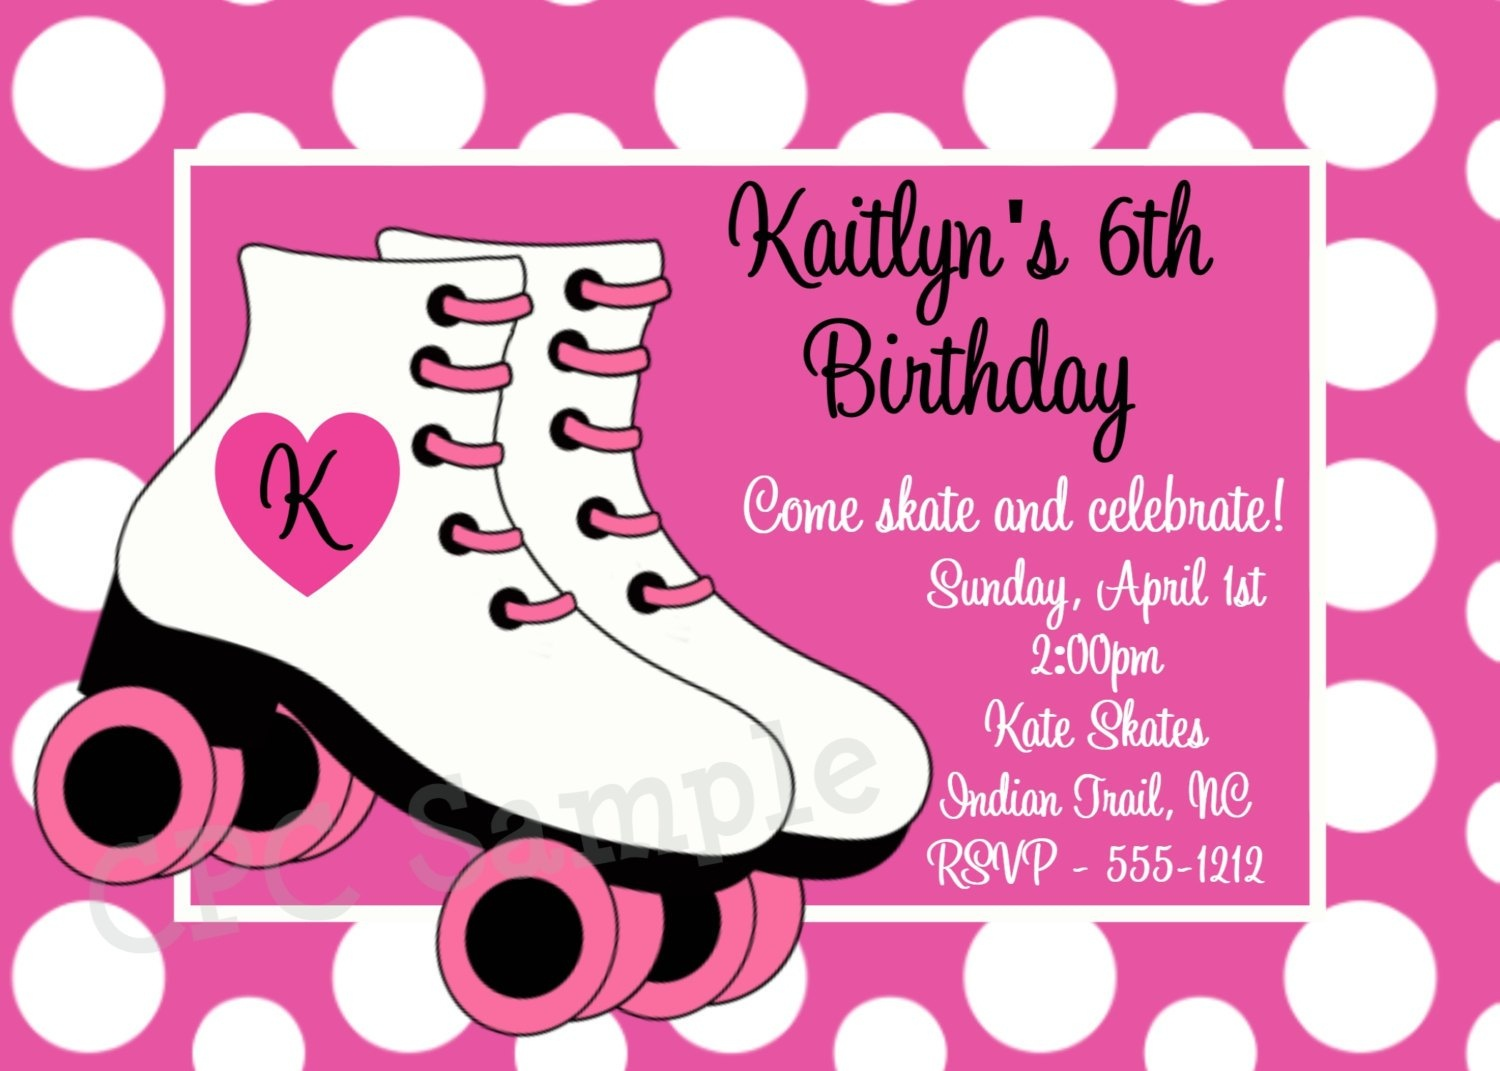 Skate Party Invitation Template. Party Invitations Free Printable - Free Printable Skateboard Birthday Party Invitations